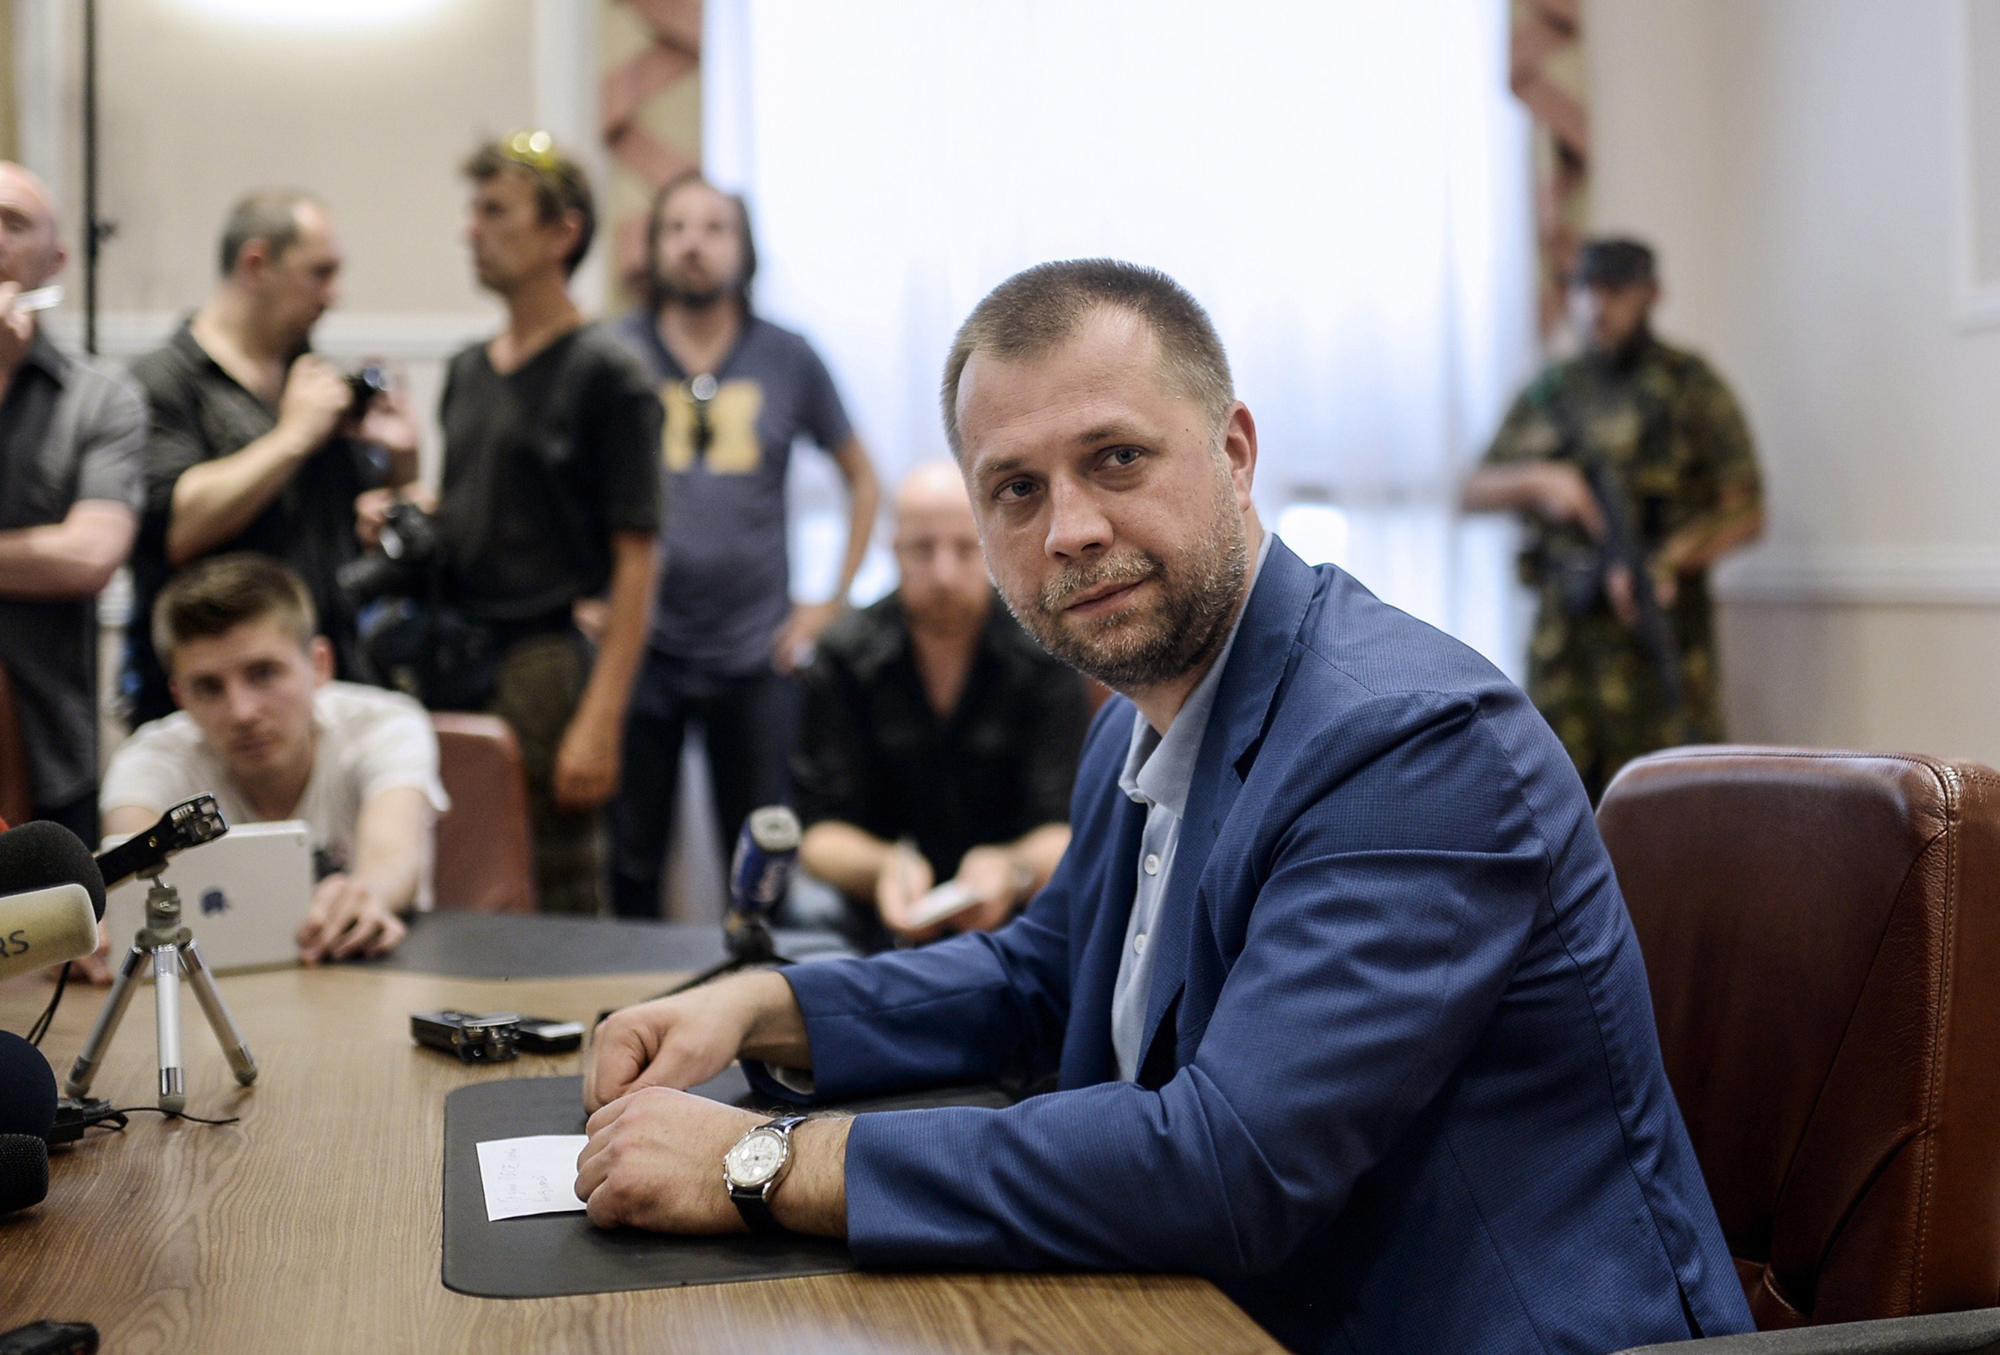 Self-proclaimed Prime Minister of the pro-Russian separatist  Donetsk People's Republic  Alexander Borodai gives a press conference in Donetsk, July 19, 2014.